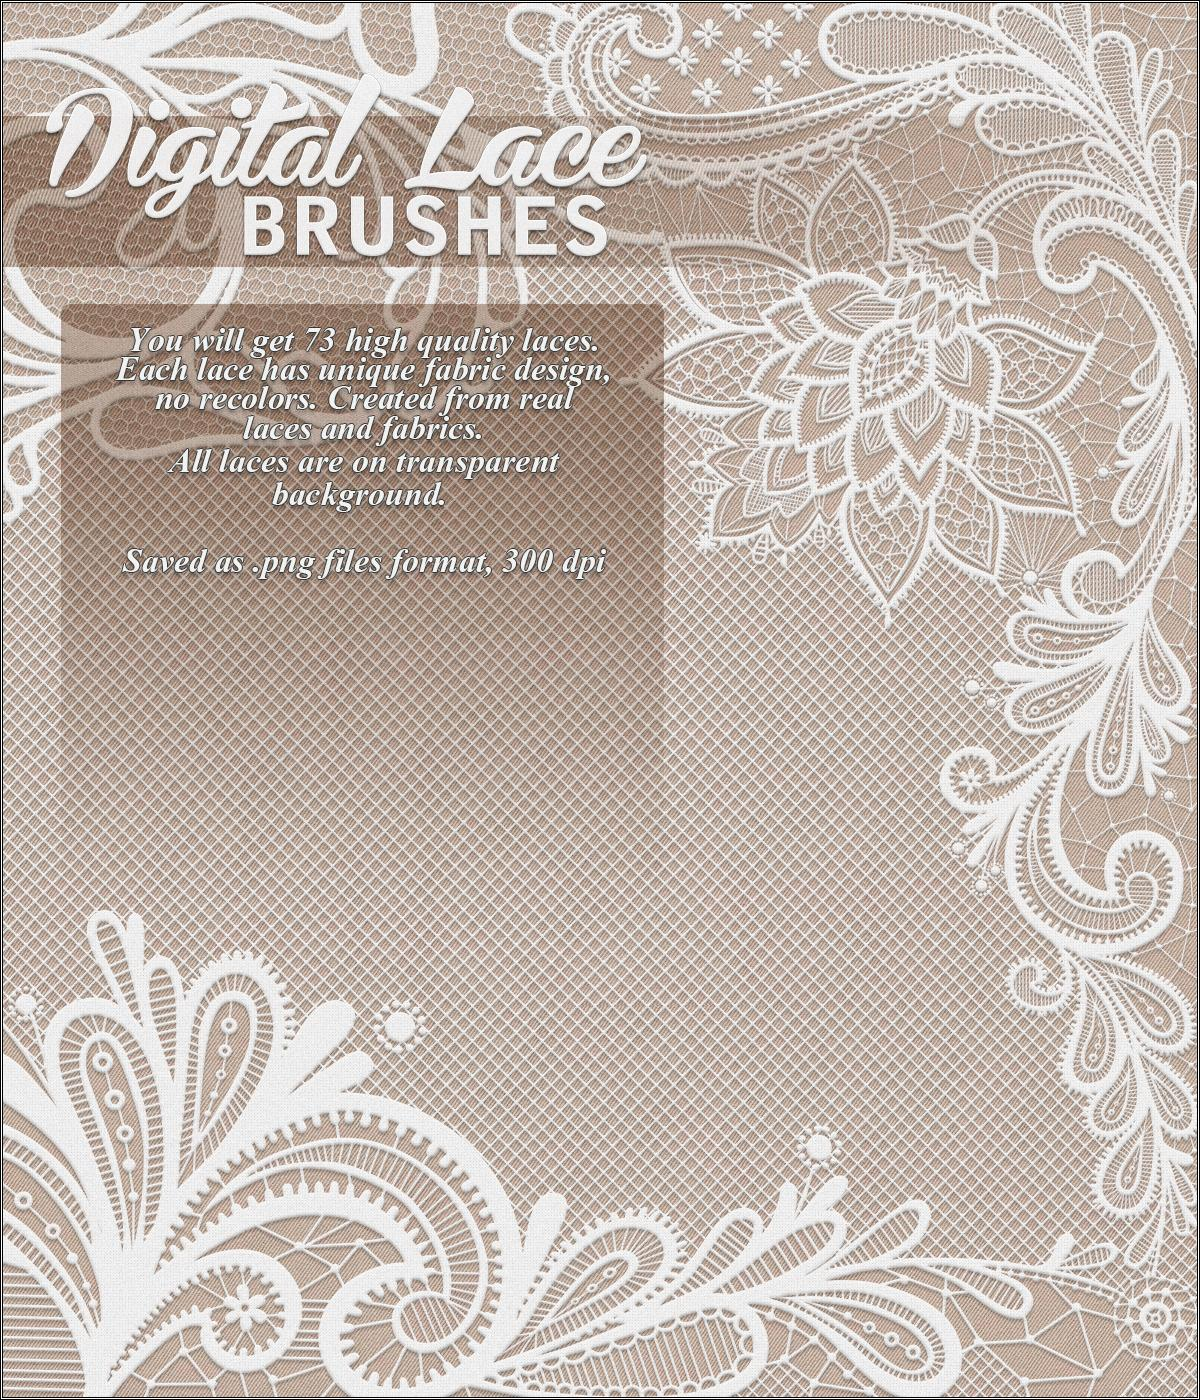 Digital Lace Brushes